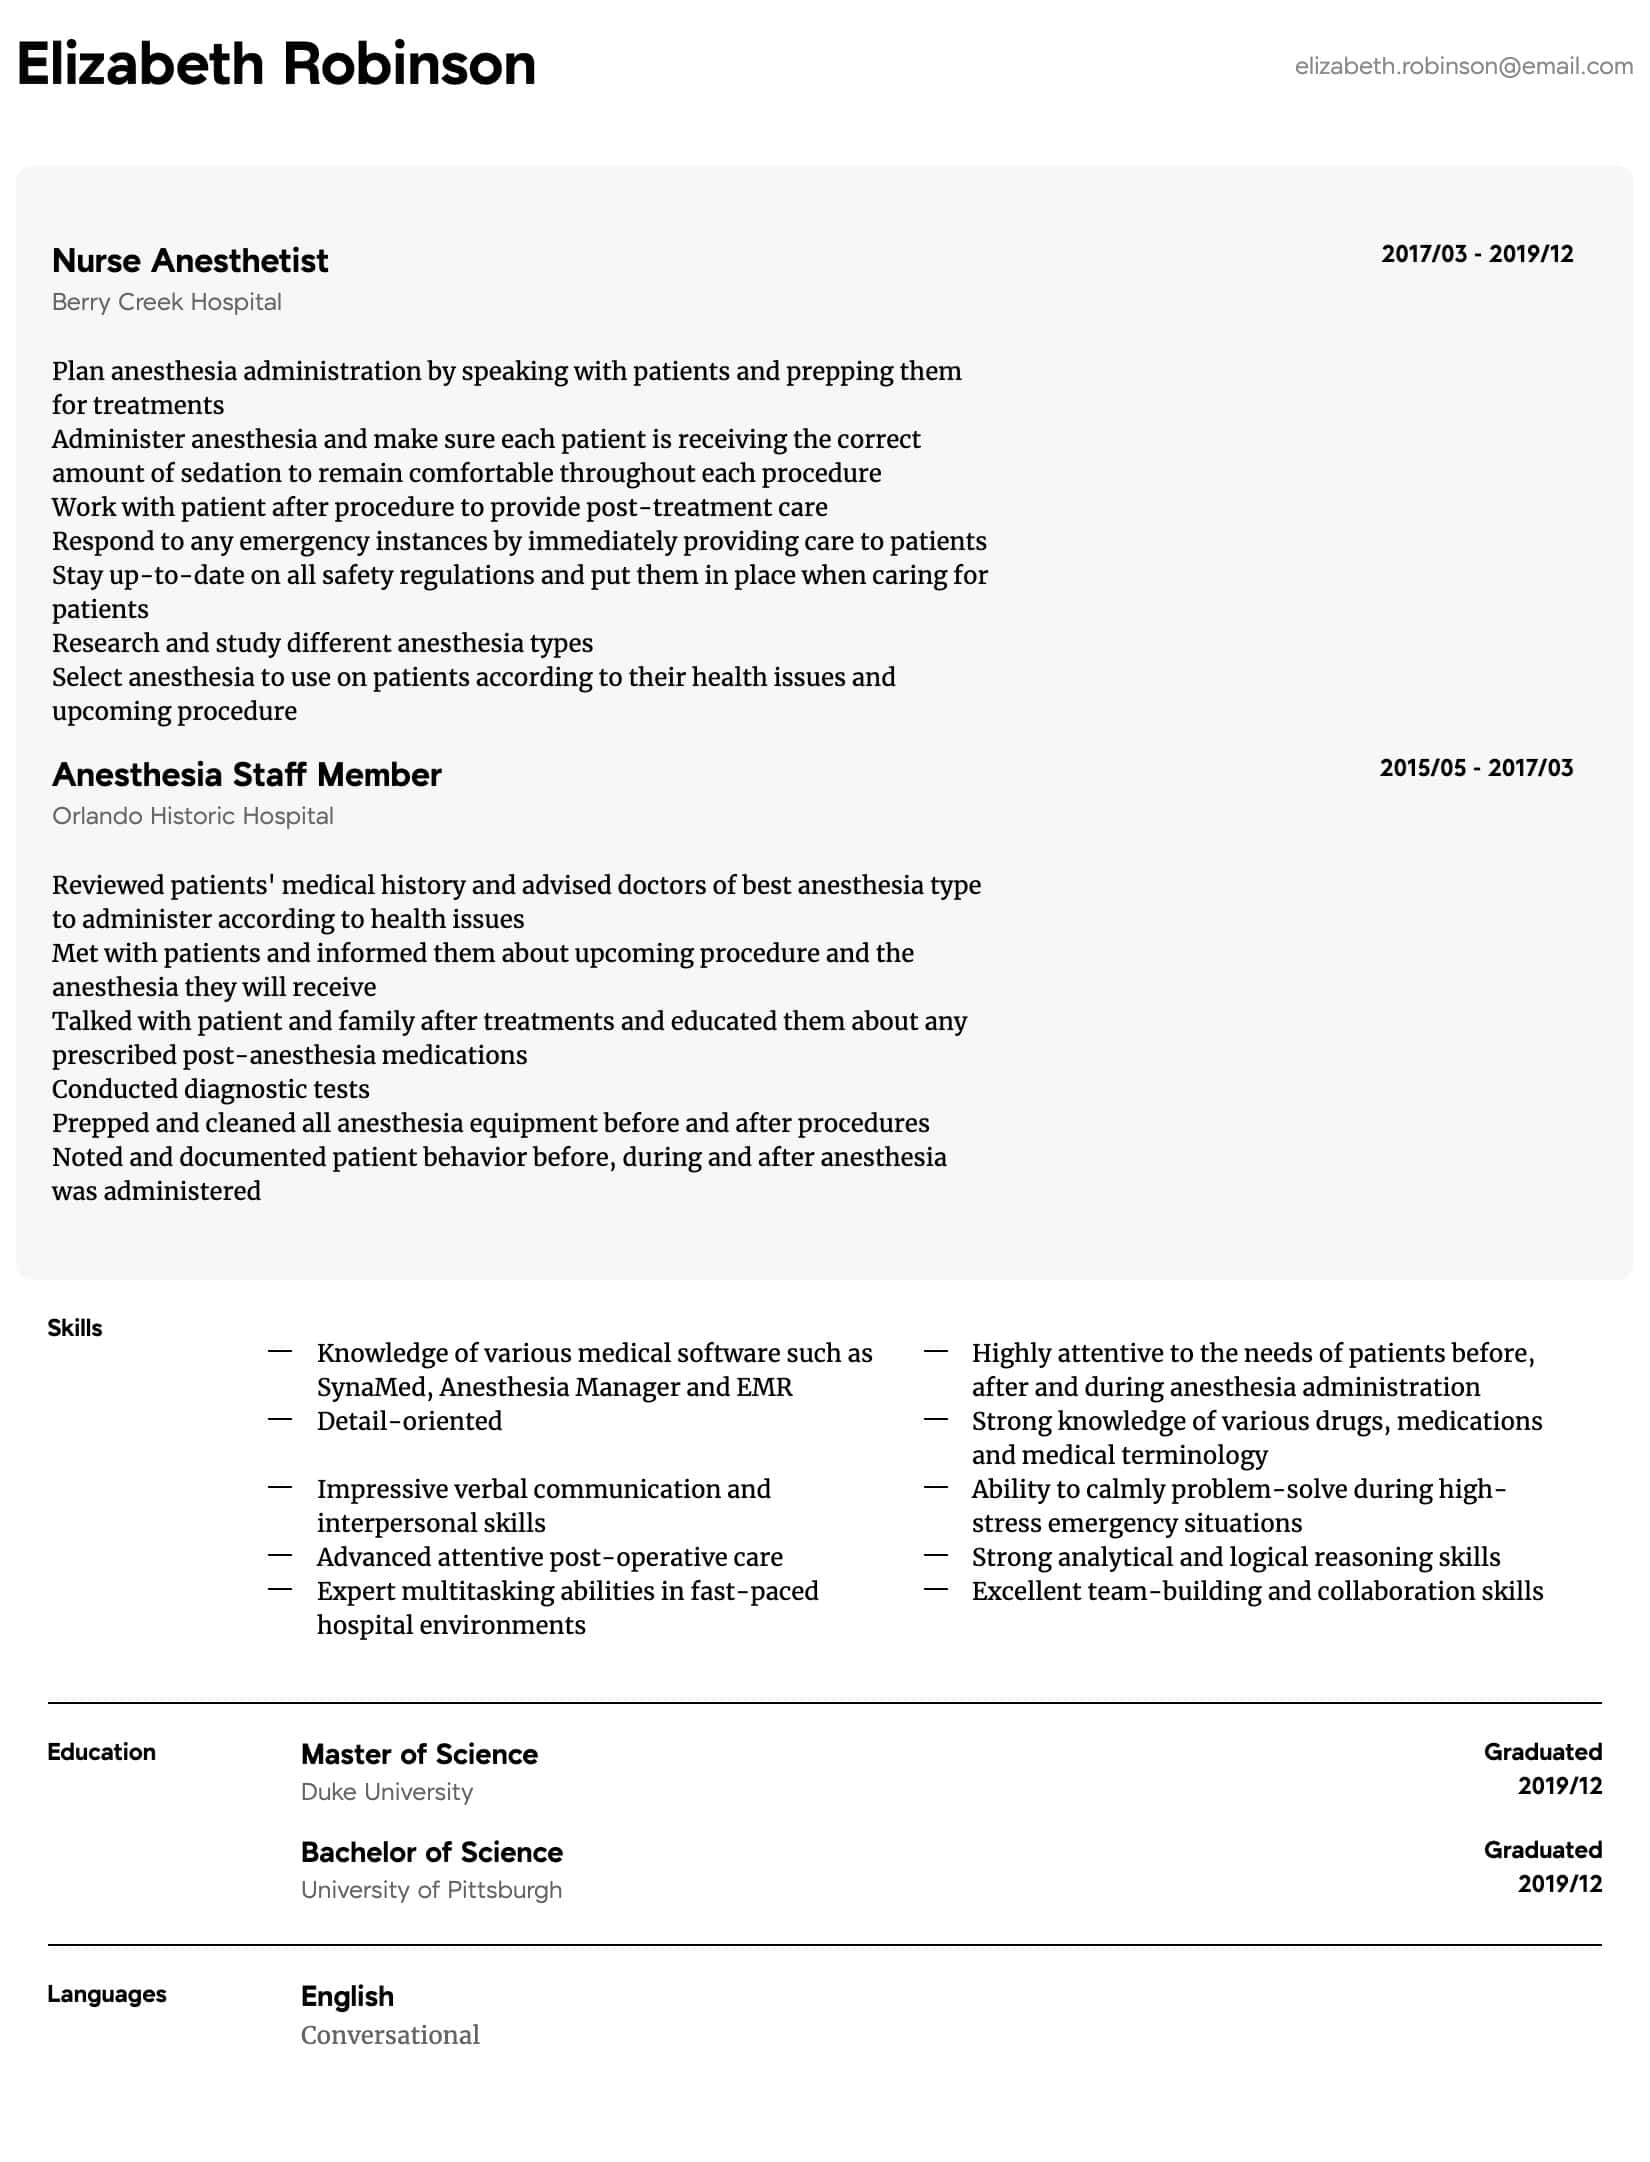 nurse anesthetist resume samples  all experience levels